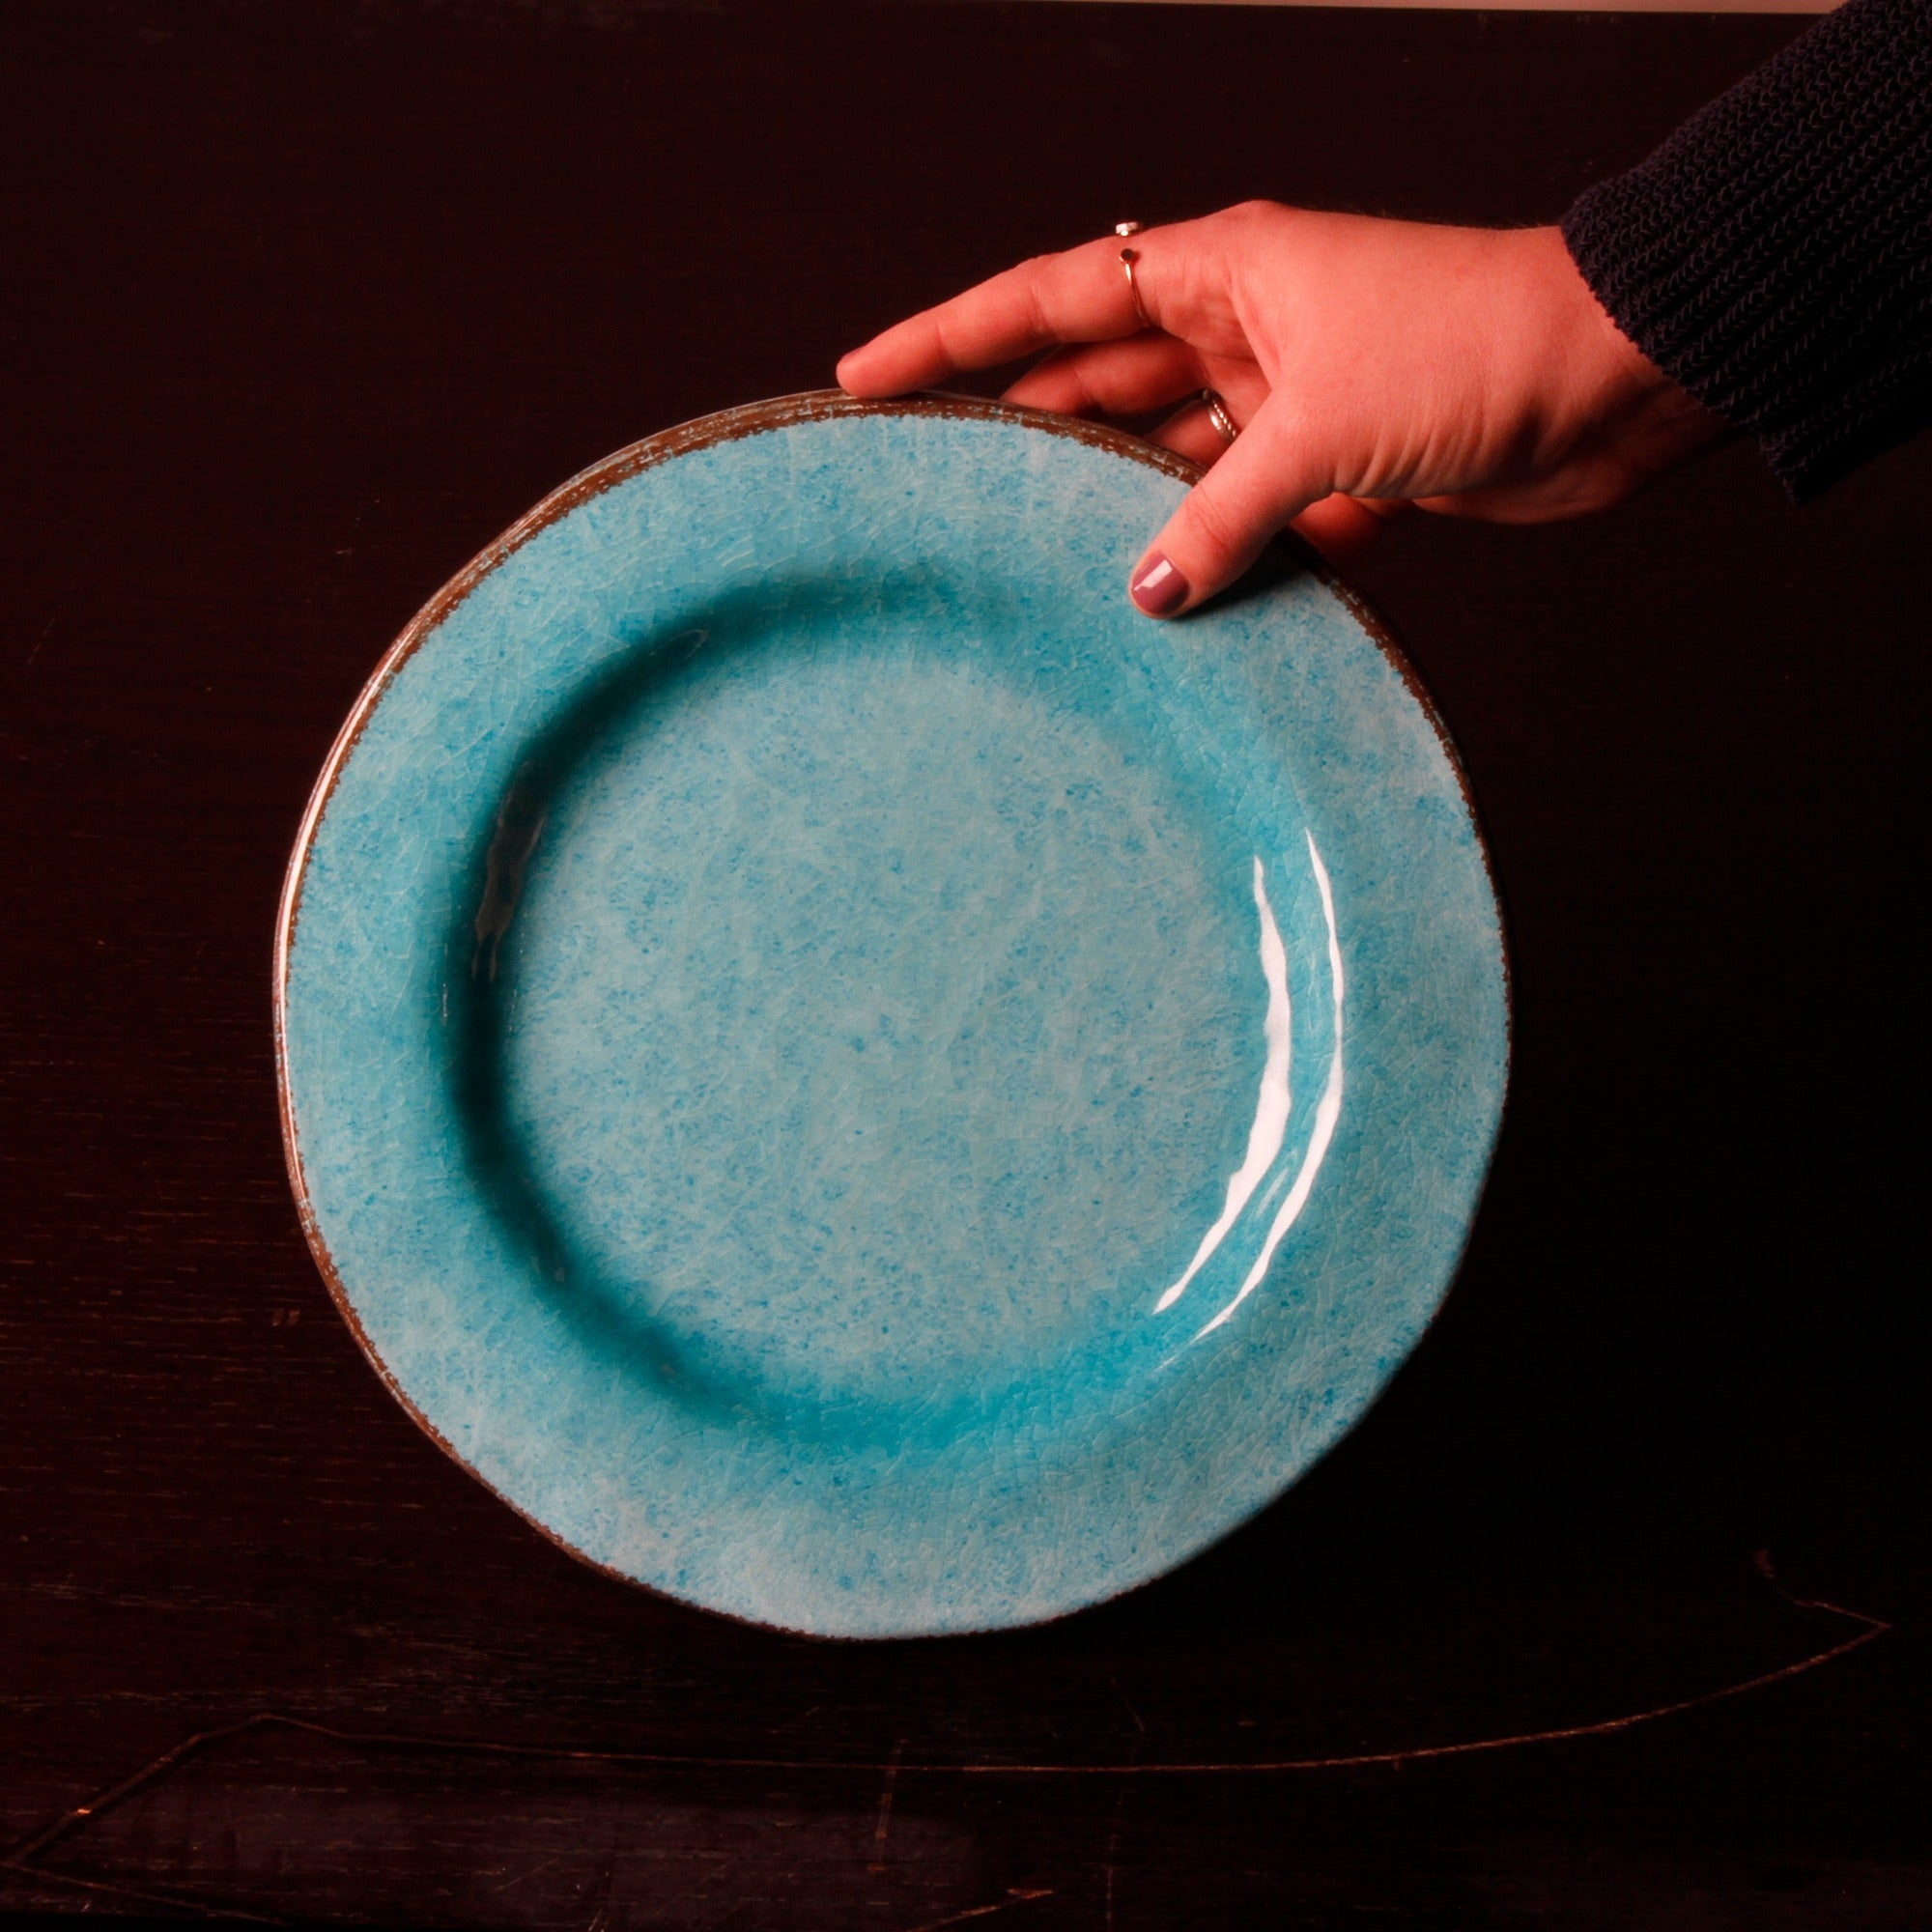 TAG Veranda Melamine Dinner Plates Ocean Blue - Free Shipping On Orders Over $45 - Overstock - 19024278 & TAG Veranda Melamine Dinner Plates Ocean Blue - Free Shipping On ...